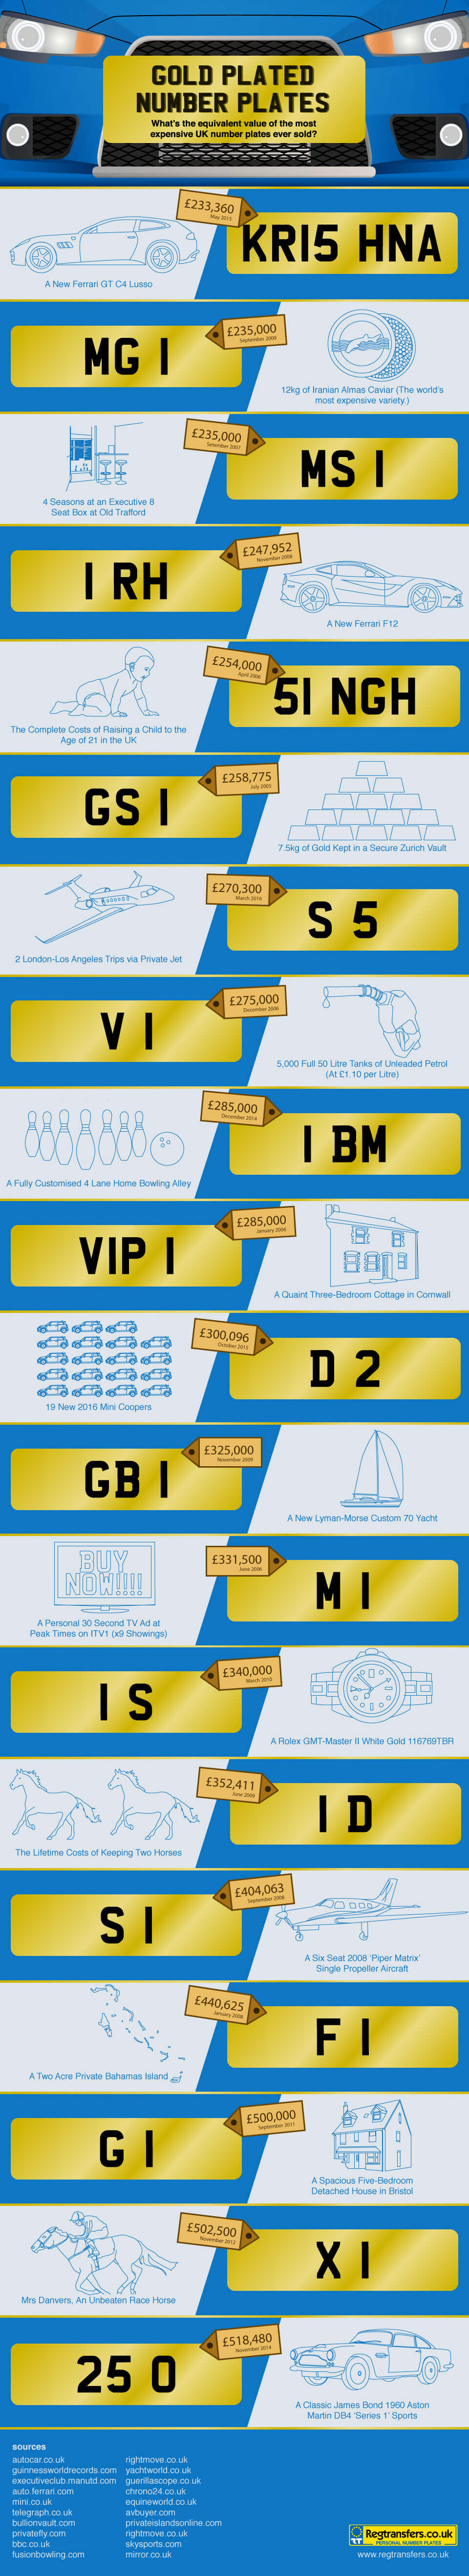 Click here to view a full preview of the UK's most expensive number plates